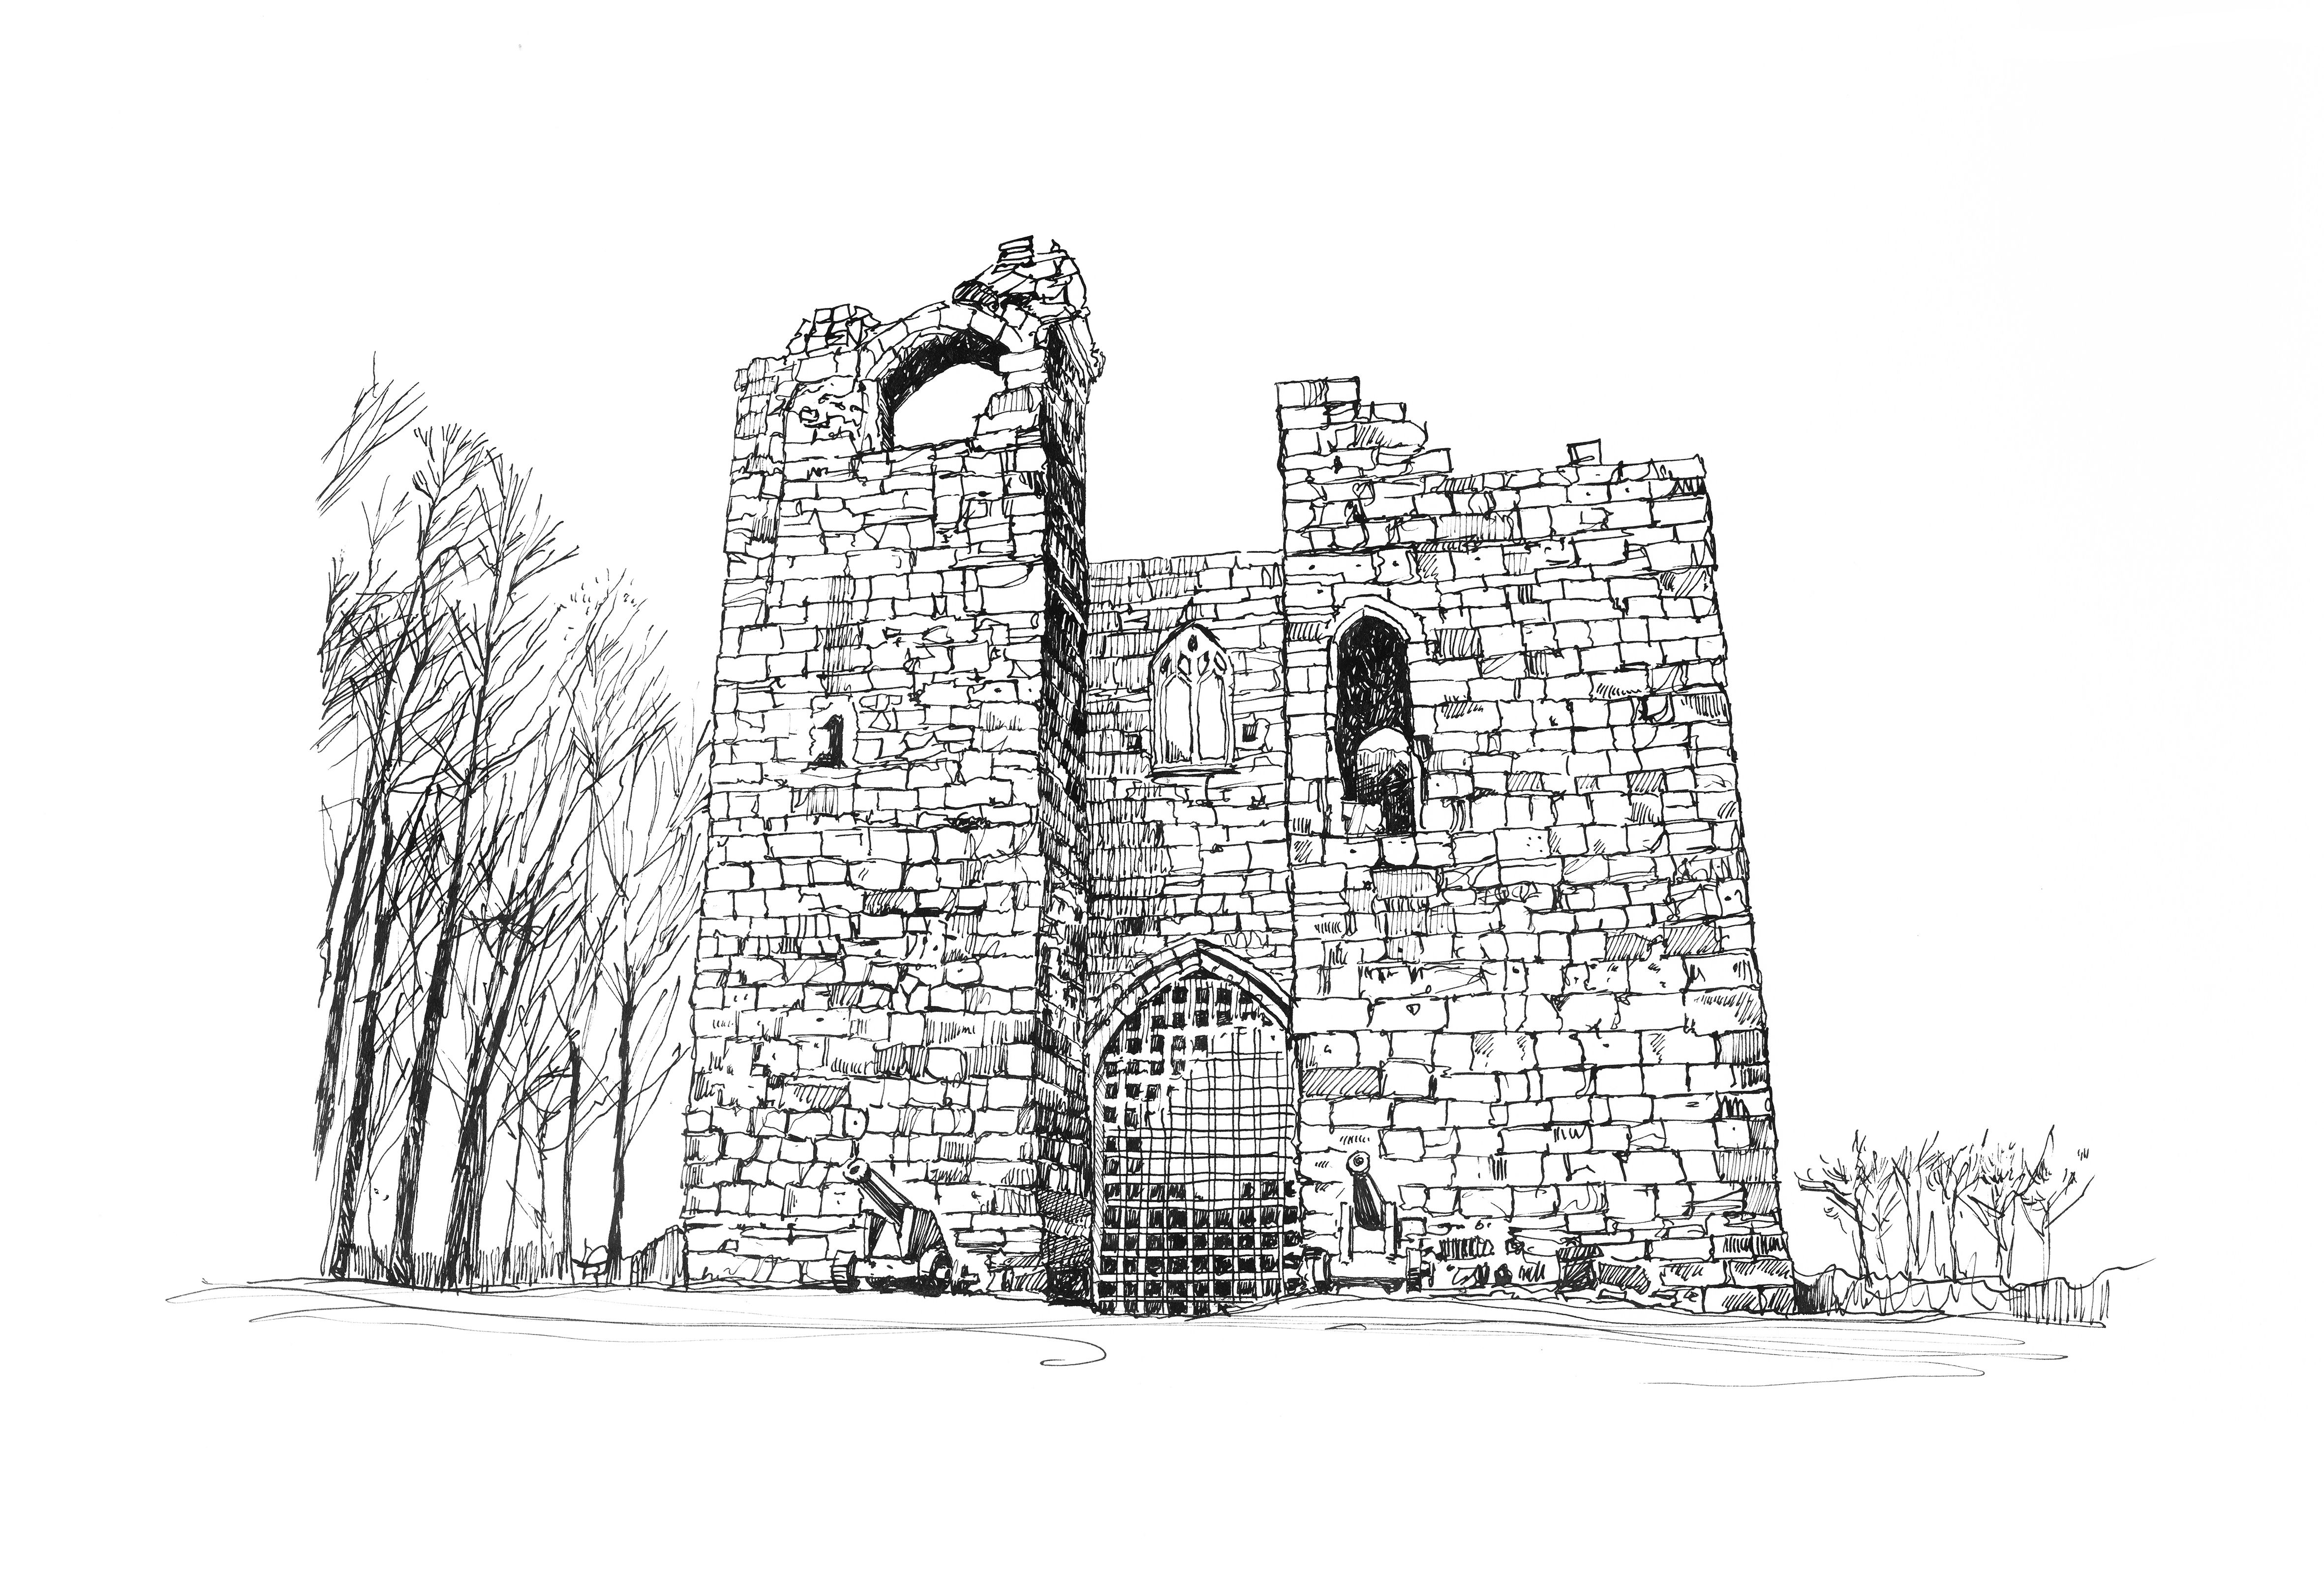 How to draw Priory with a simple pencil easily and without artistic skills